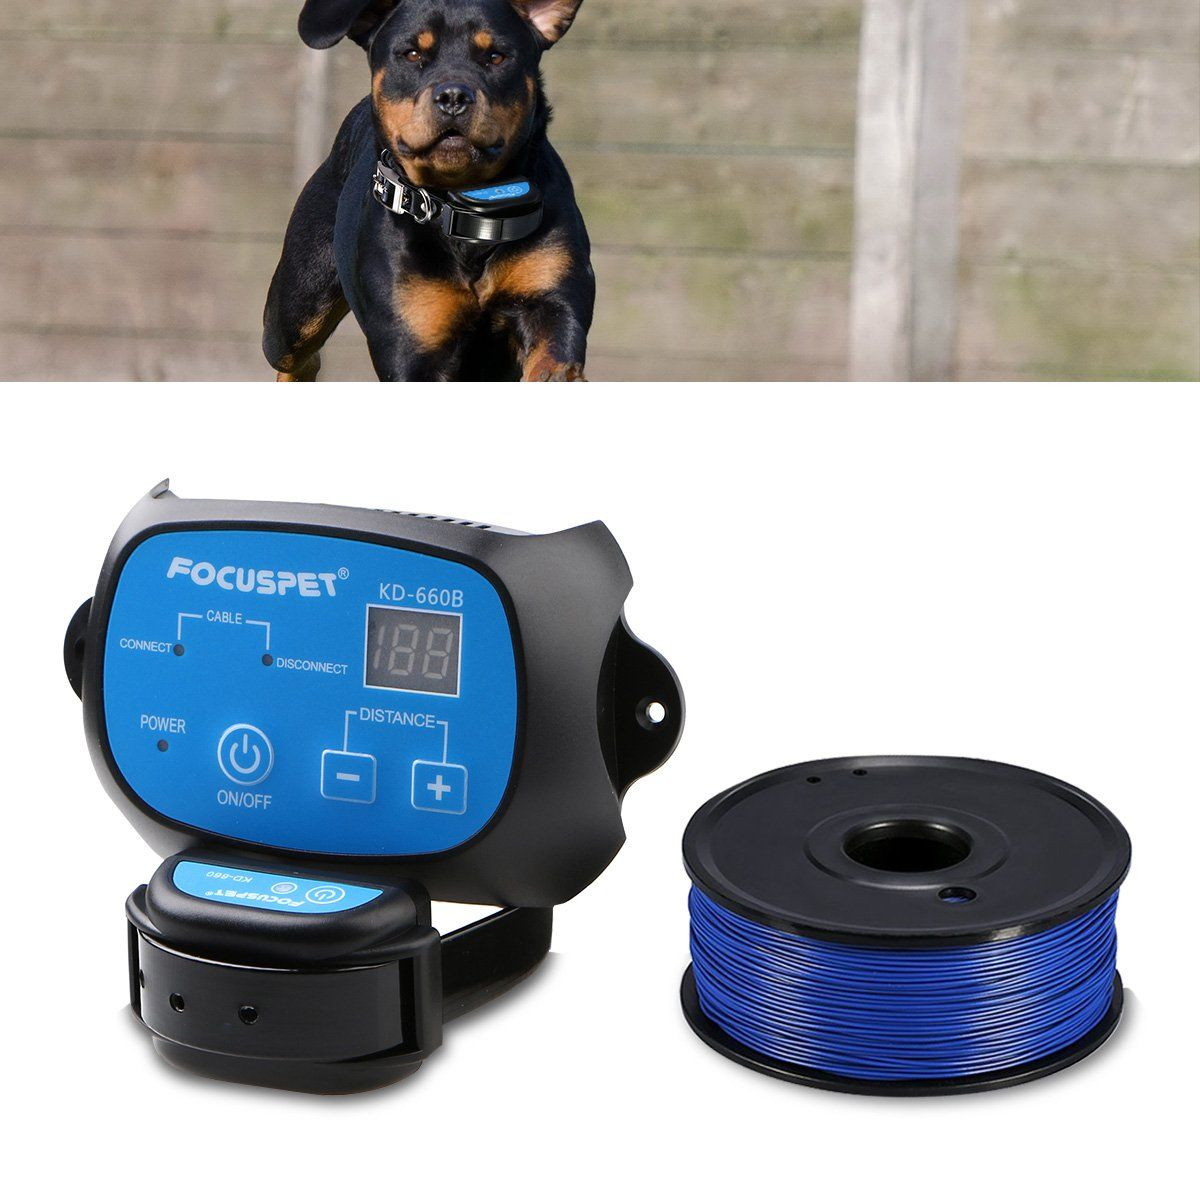 Focuspet In Ground Dog Fence System Outdoor Invisible Electric